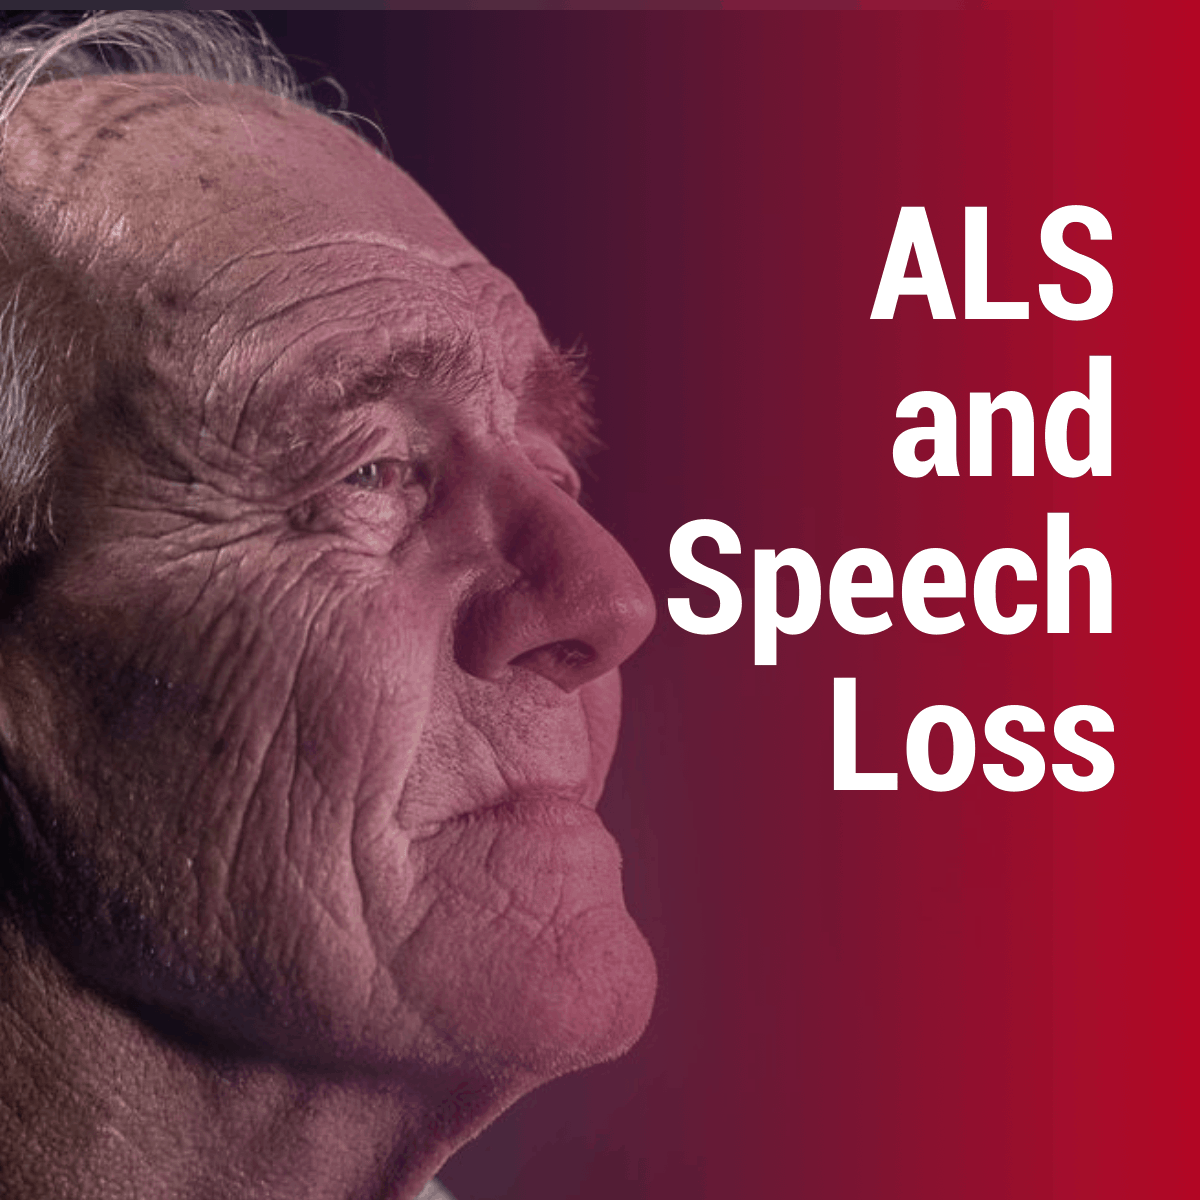 ALS and Speech Loss